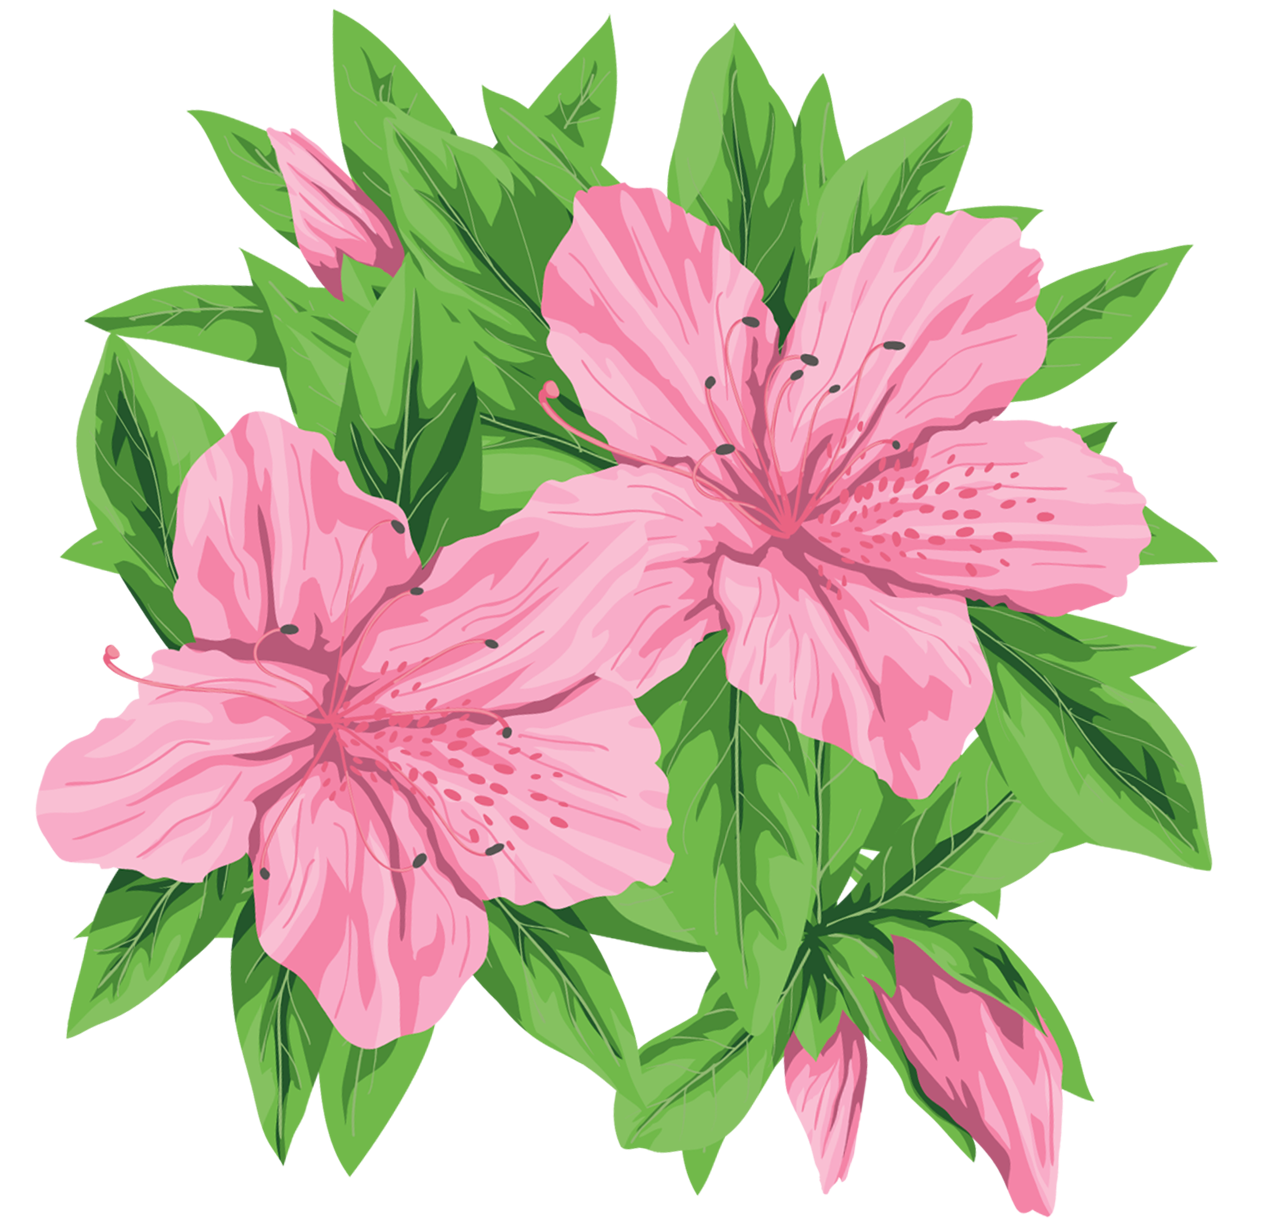 Pink Flowers PNG ClipArt Image ดอกไม้